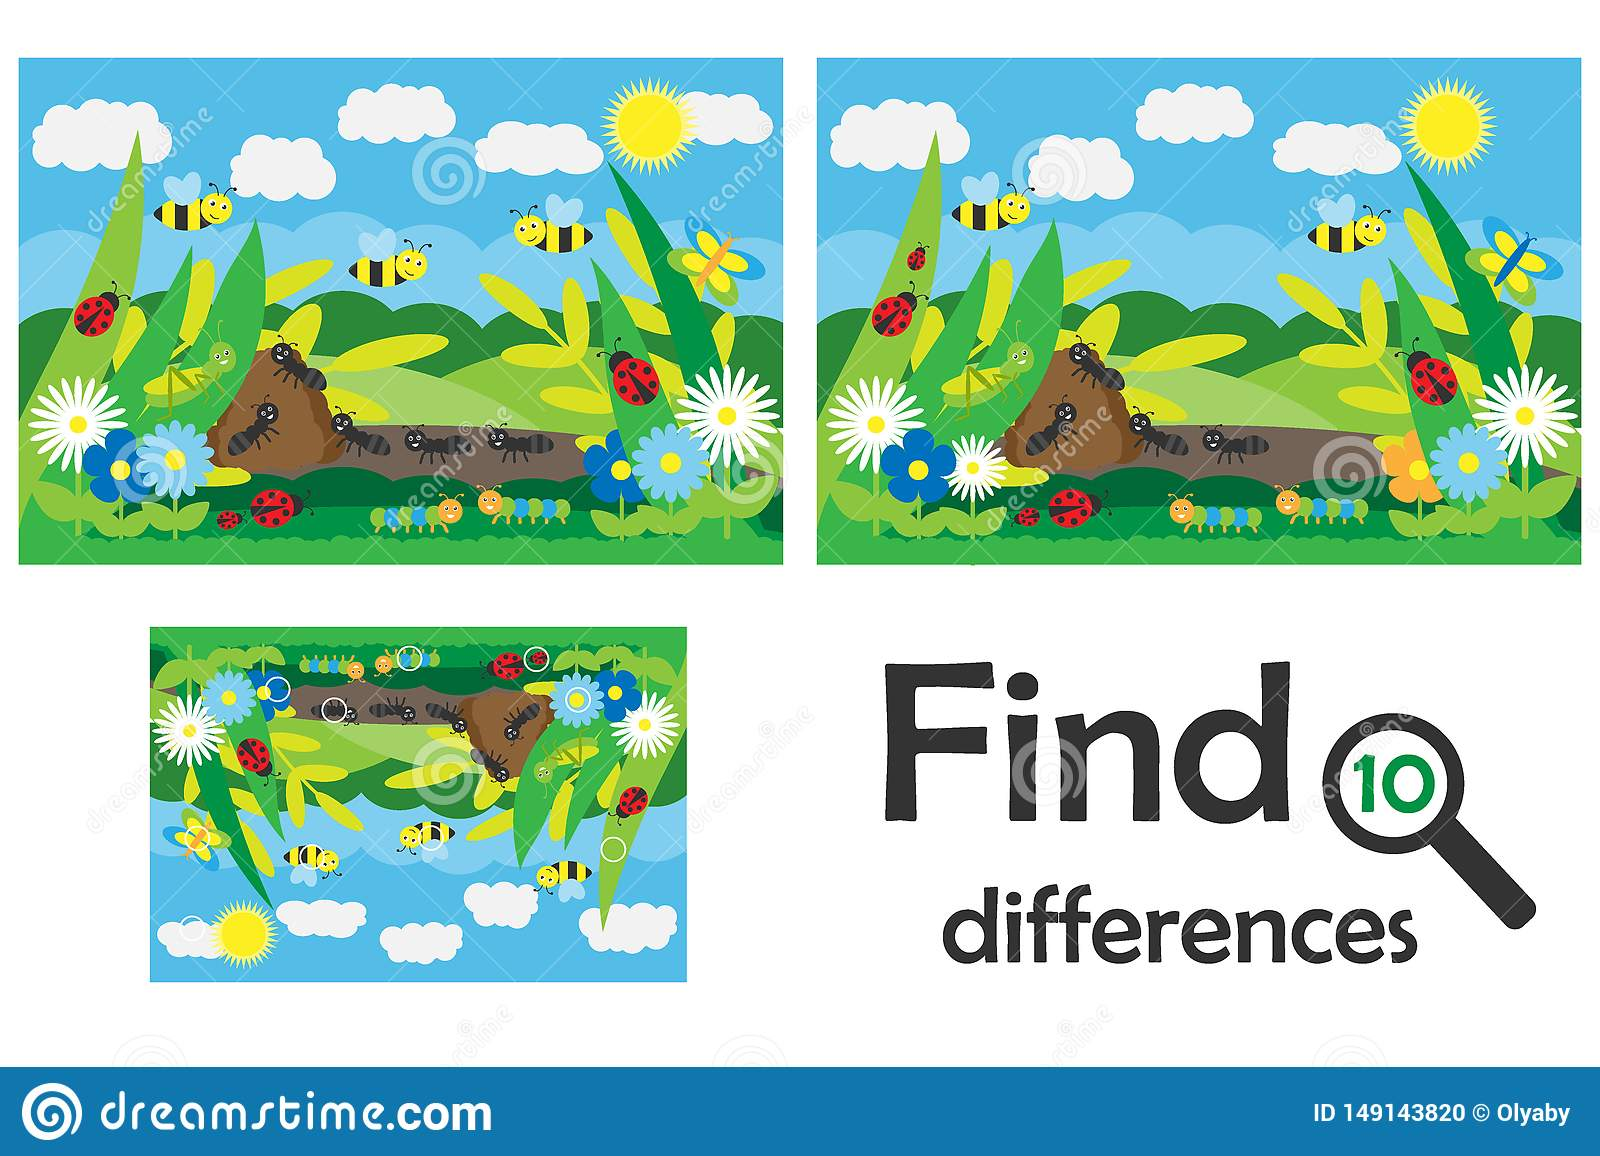 Find 10 Differences Game For Children Insects In Cartoon